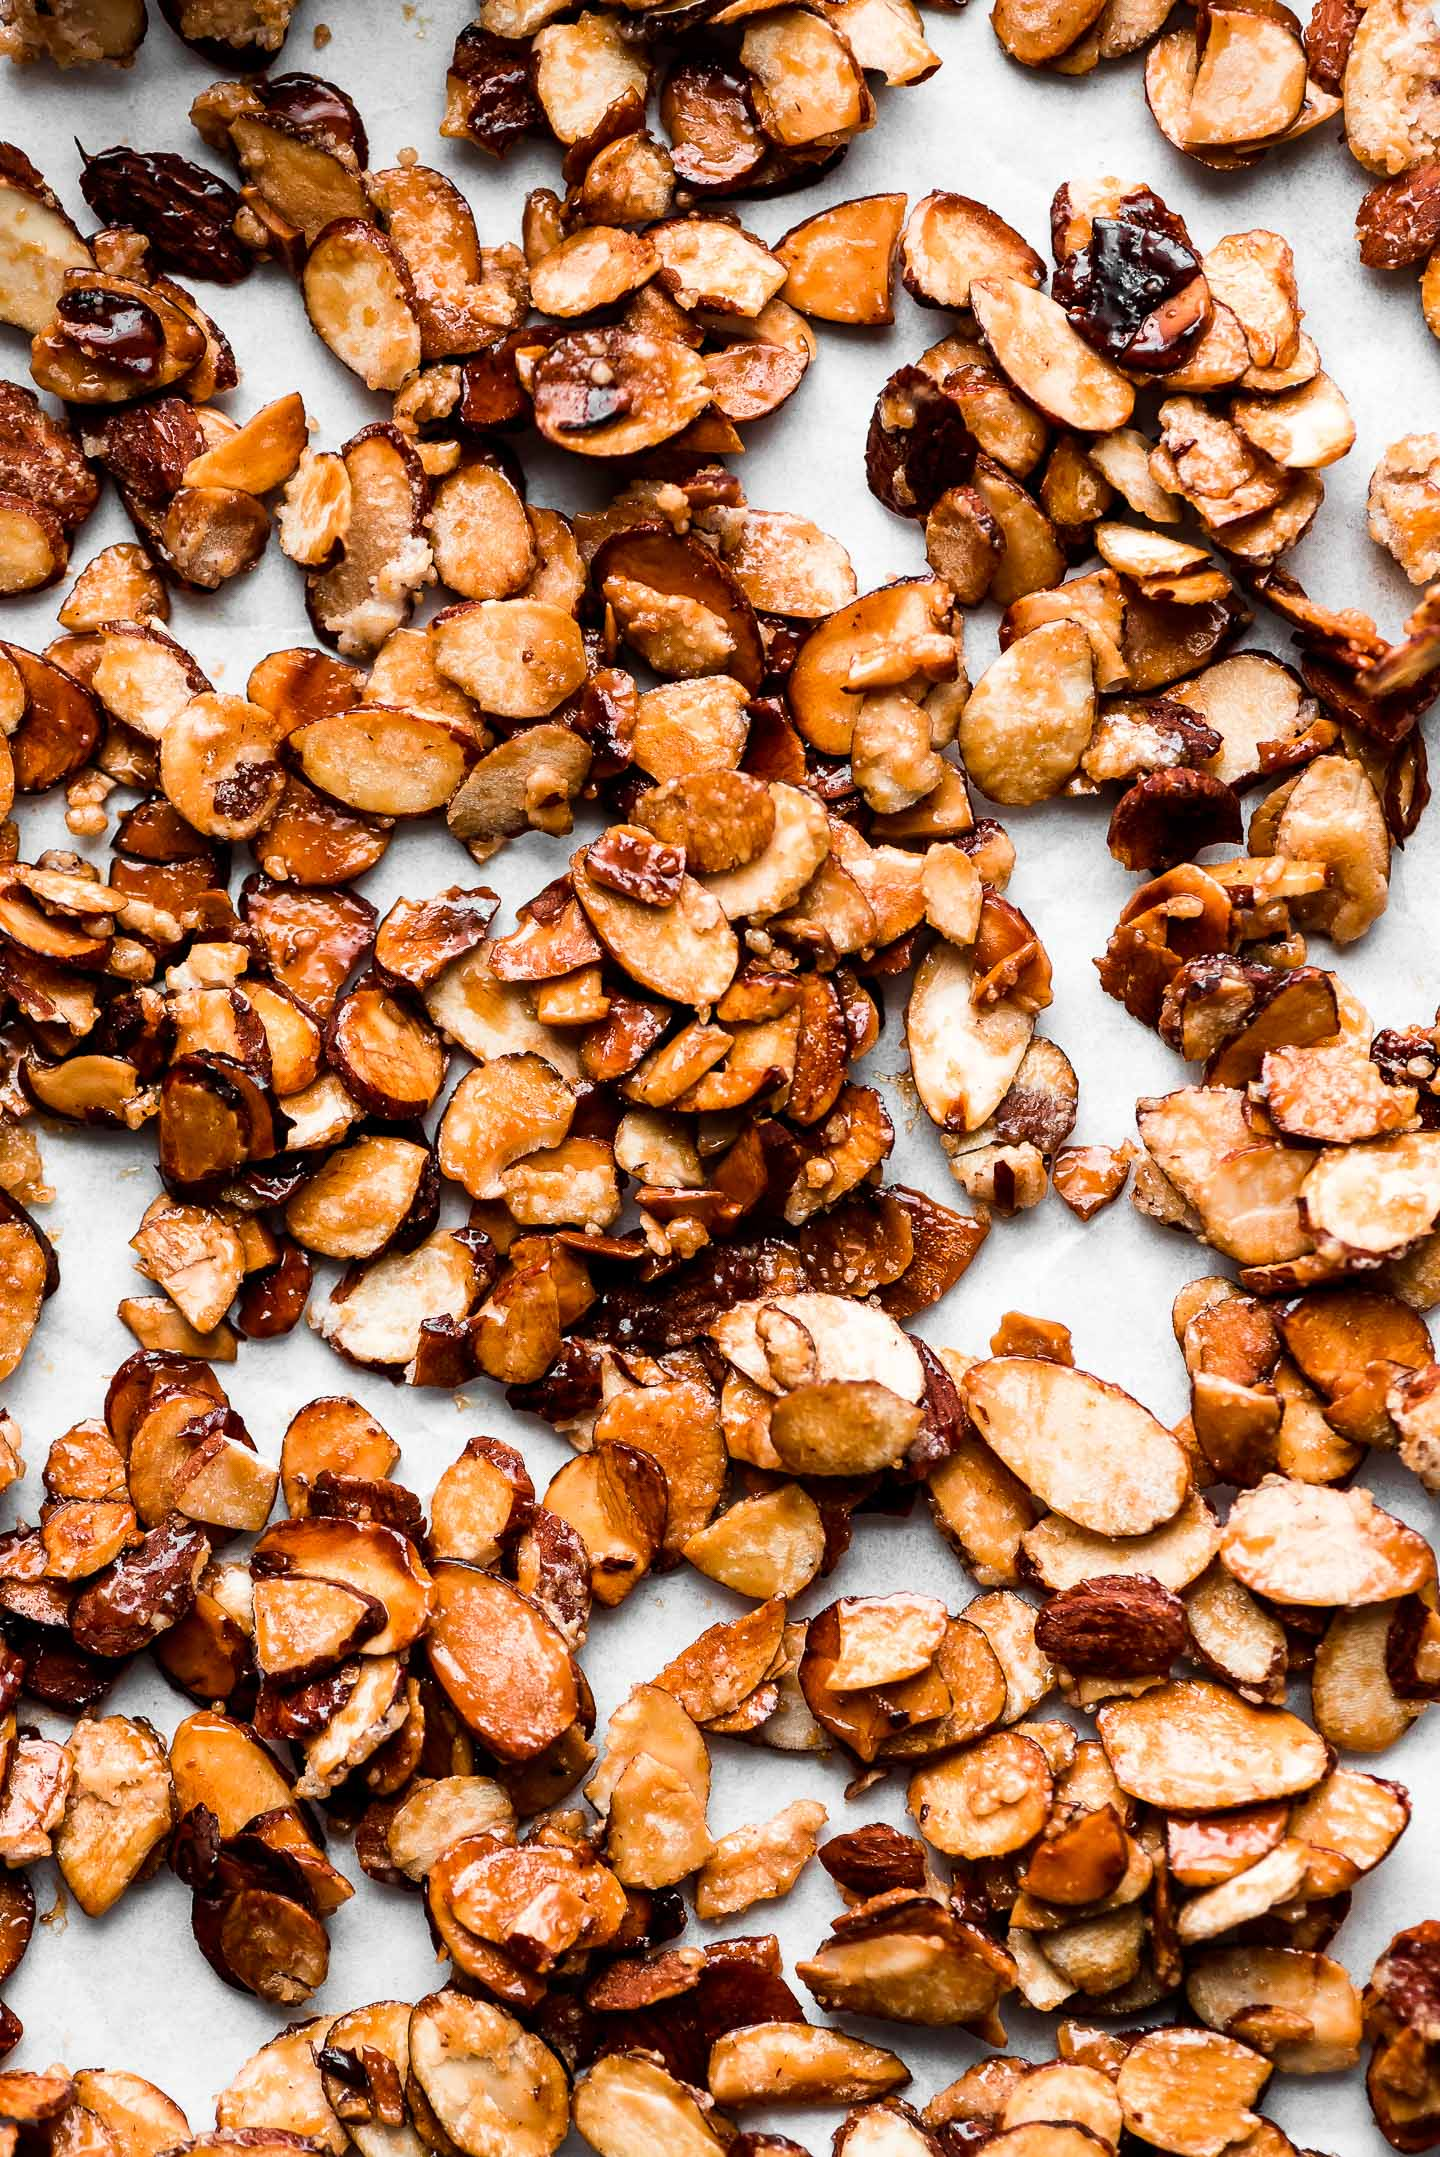 Caramelized sliced almonds spread out on parchment paper.